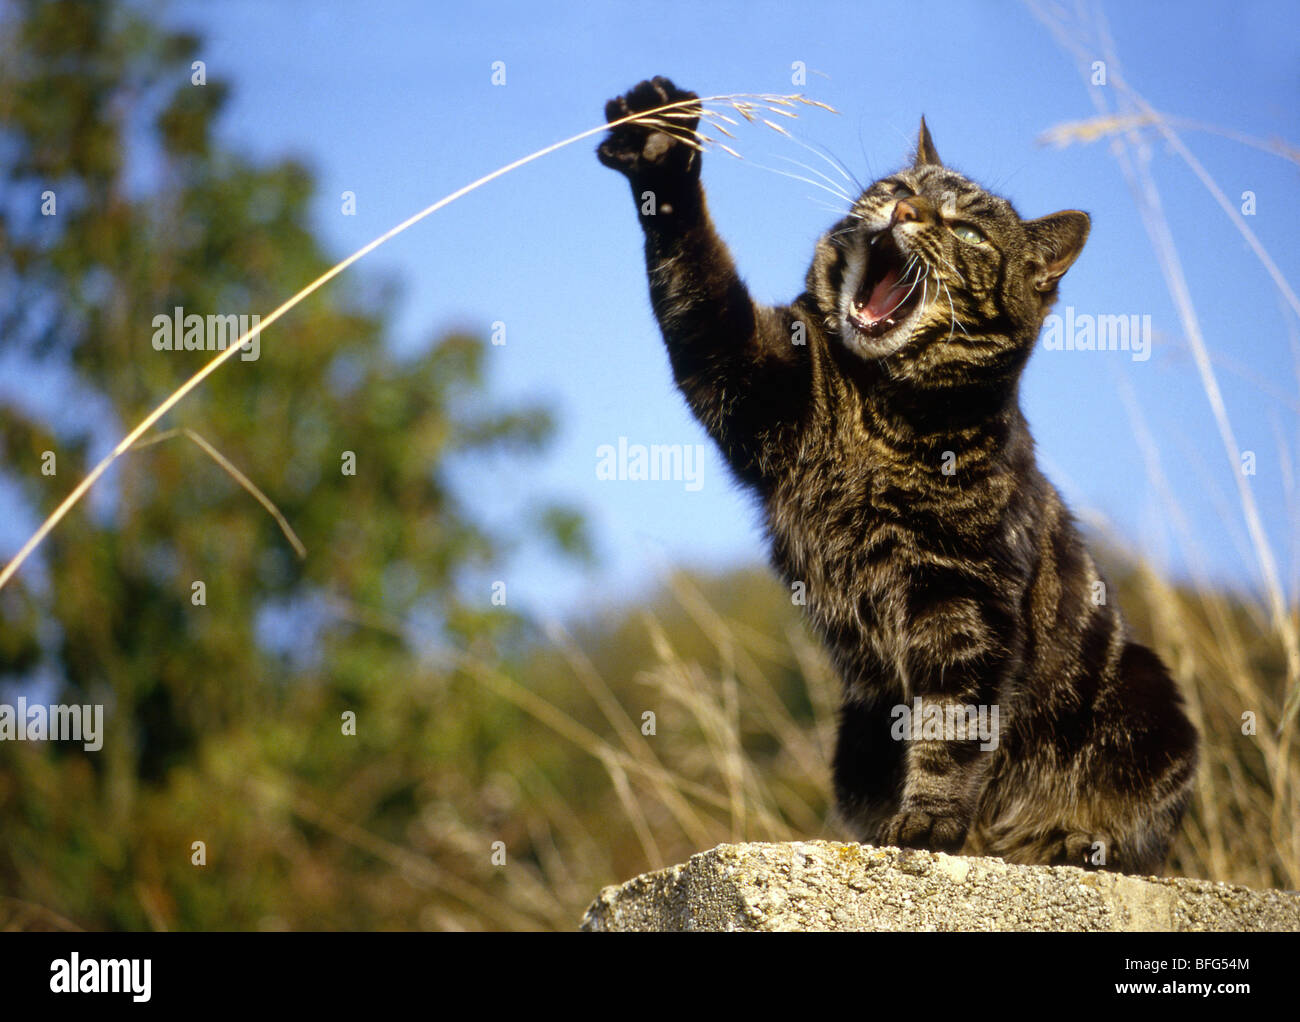 tabby cat, striking at a piece of grass Stock Photo